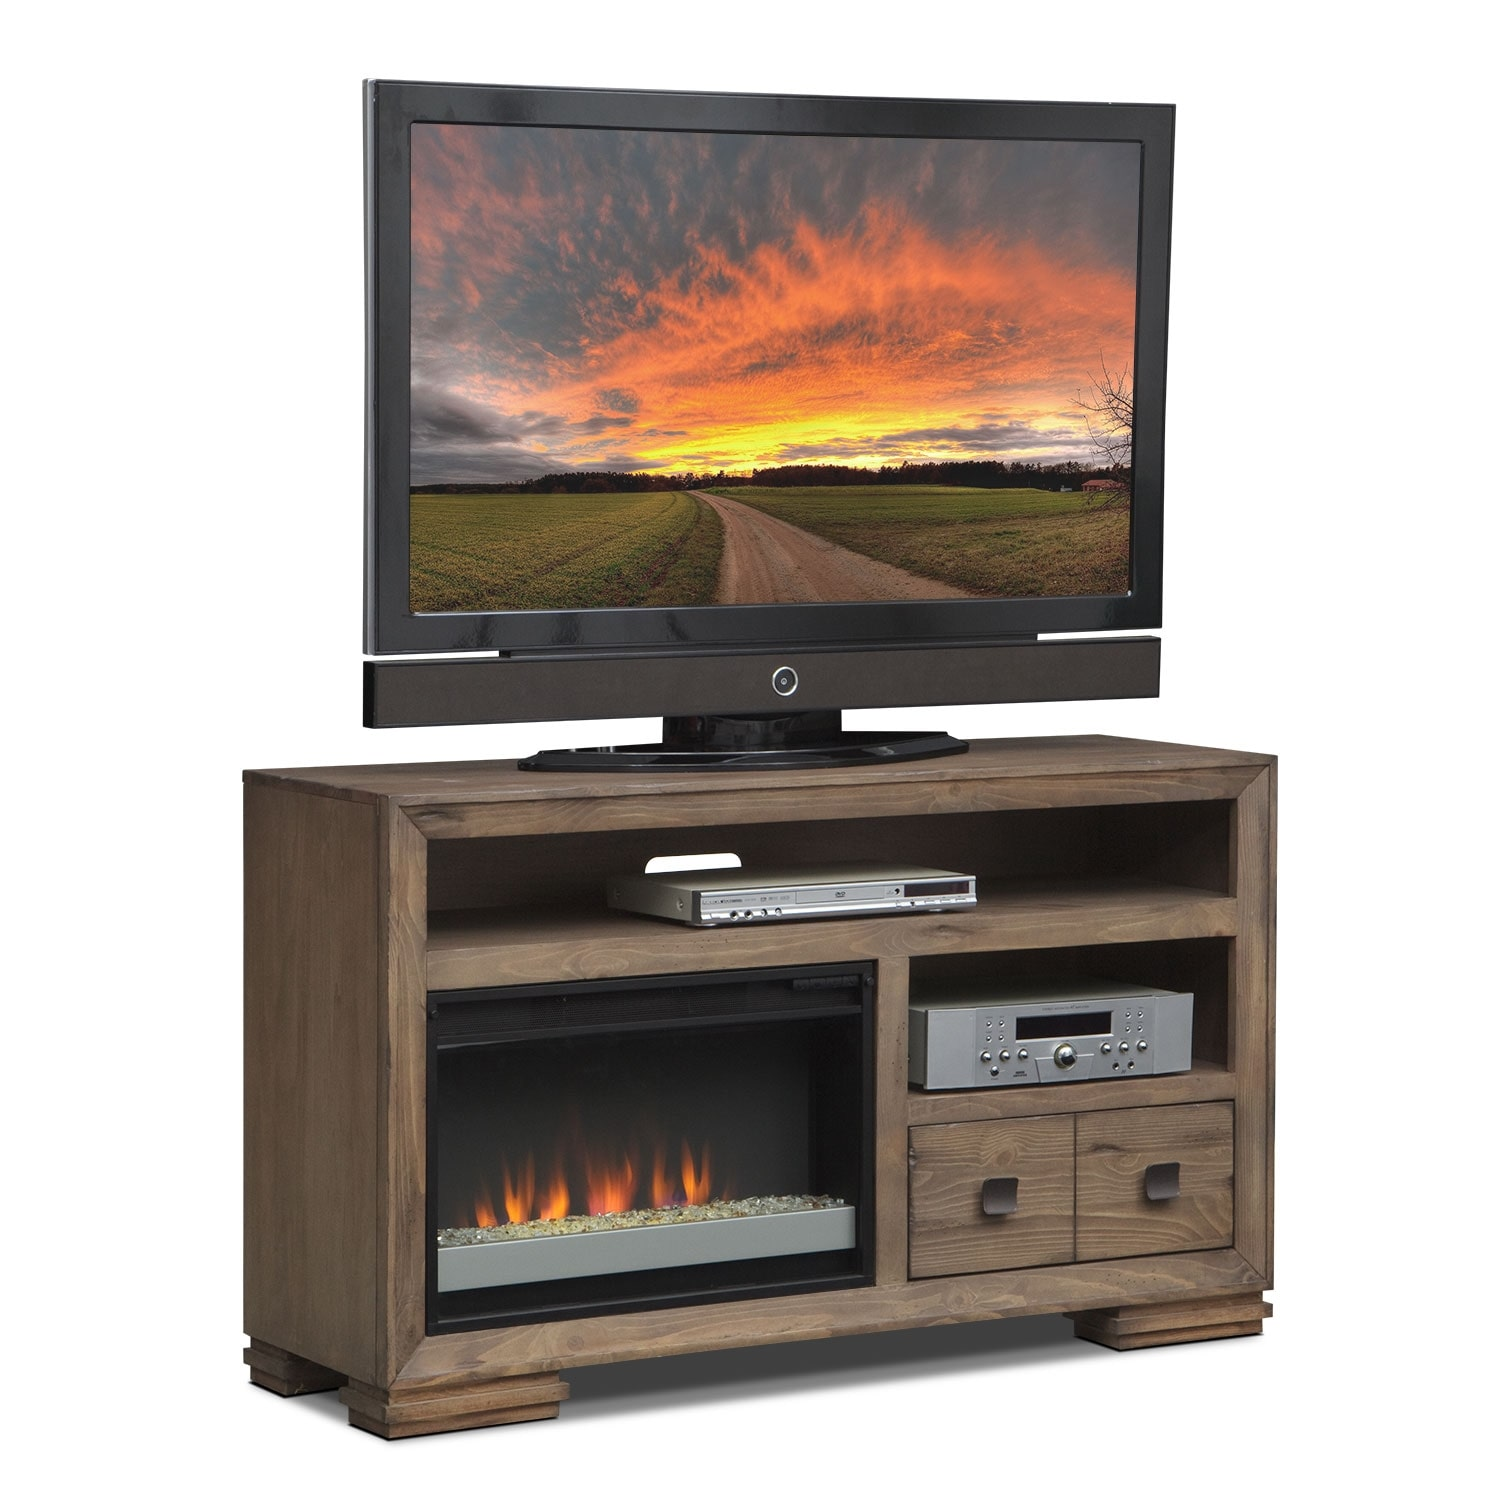 "Entertainment Furniture - Mesa 54"" Fireplace TV Stand with Contemporary Insert - Distressed Pine"